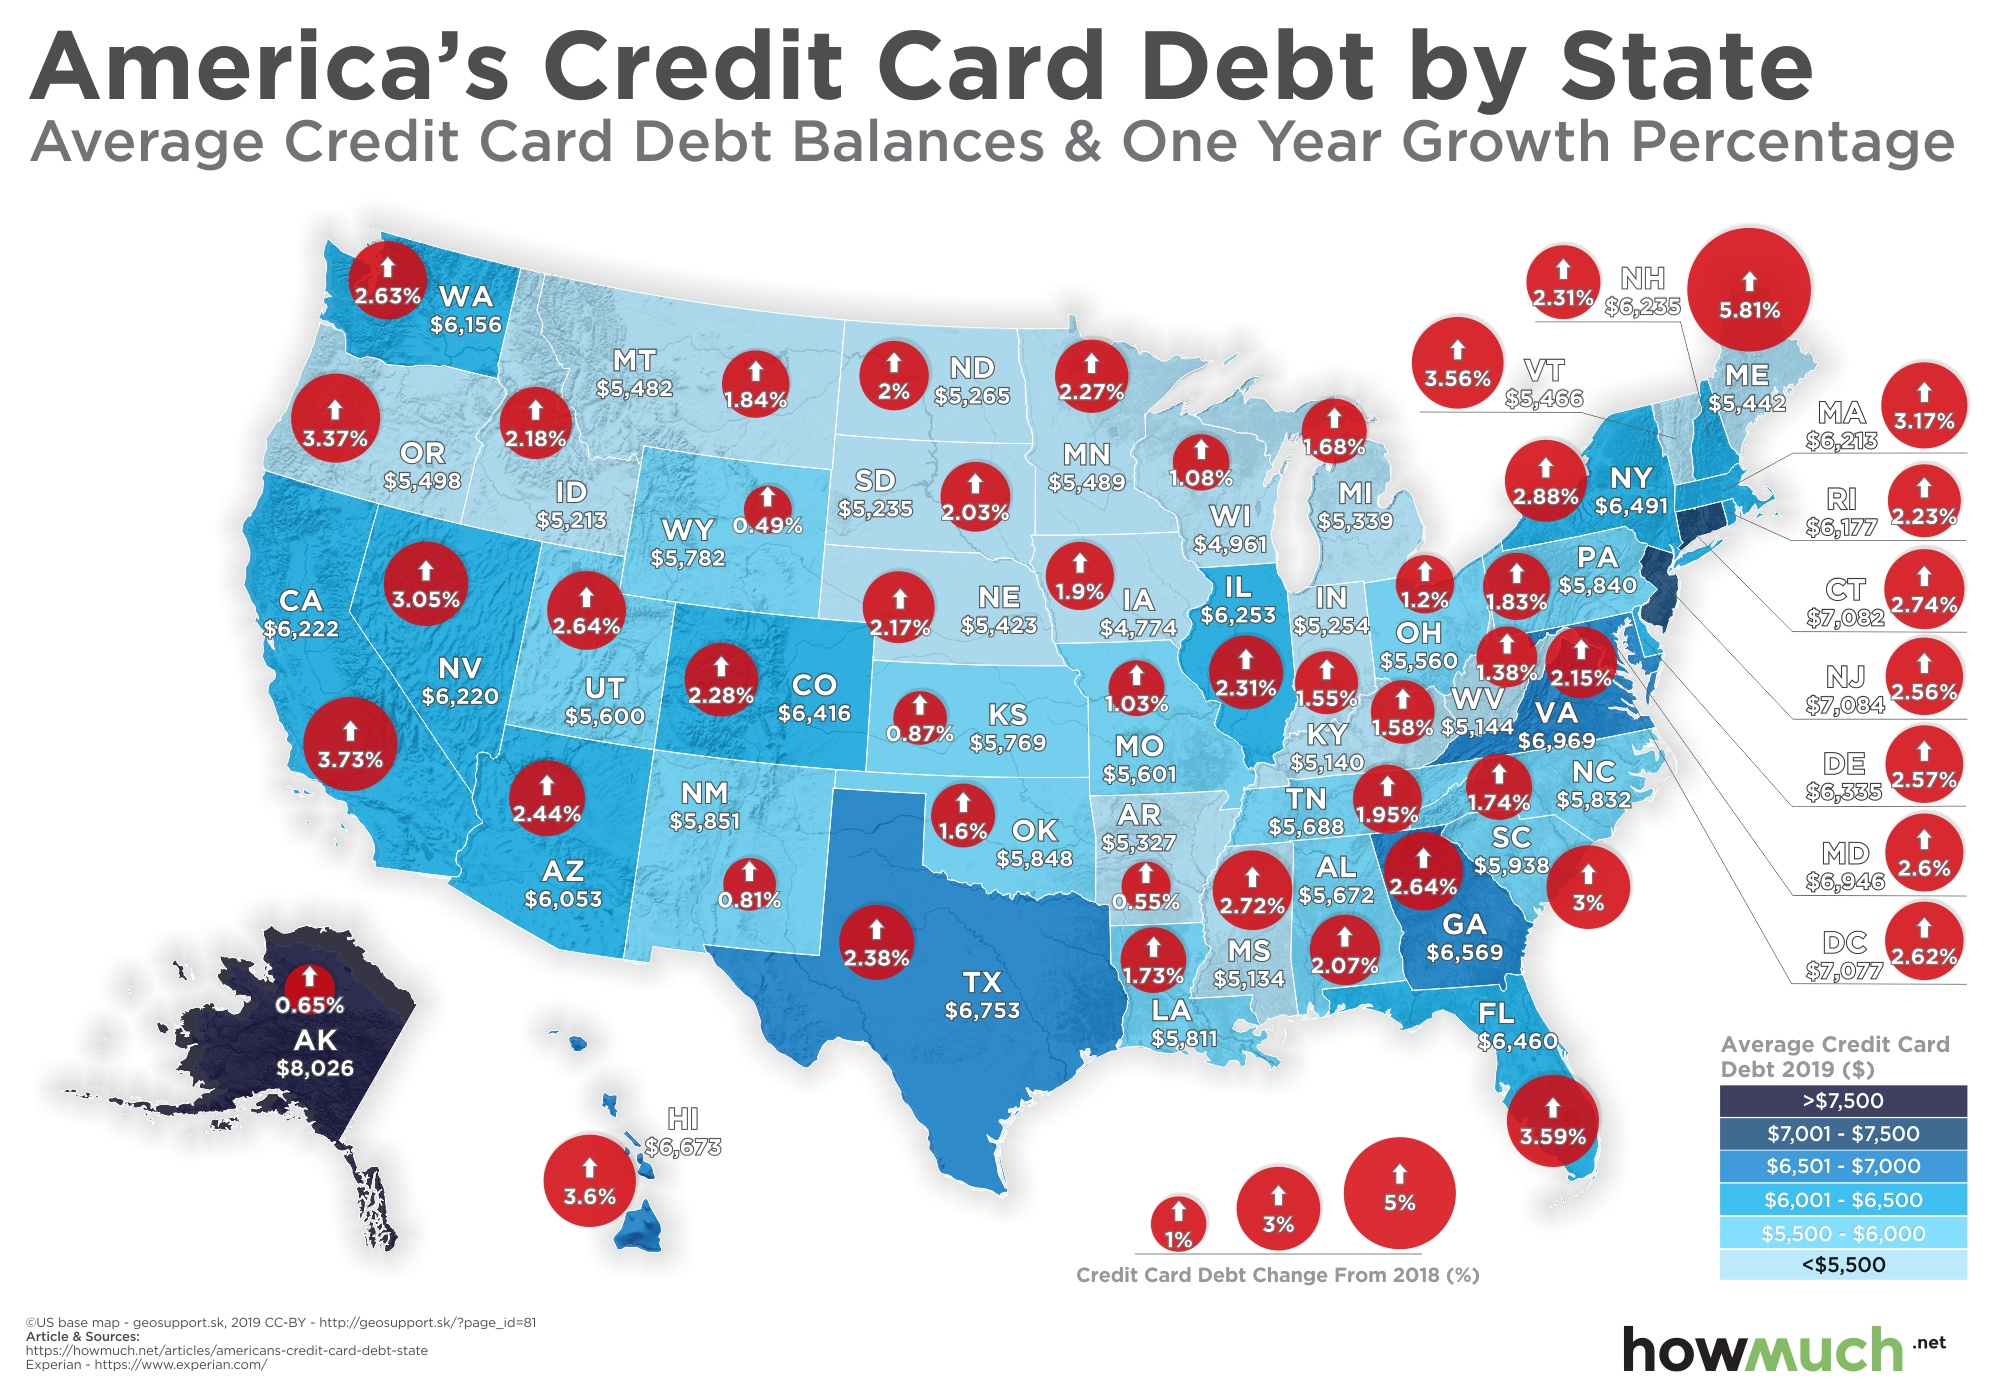 Visualizing The Average Credit Card Debt in America